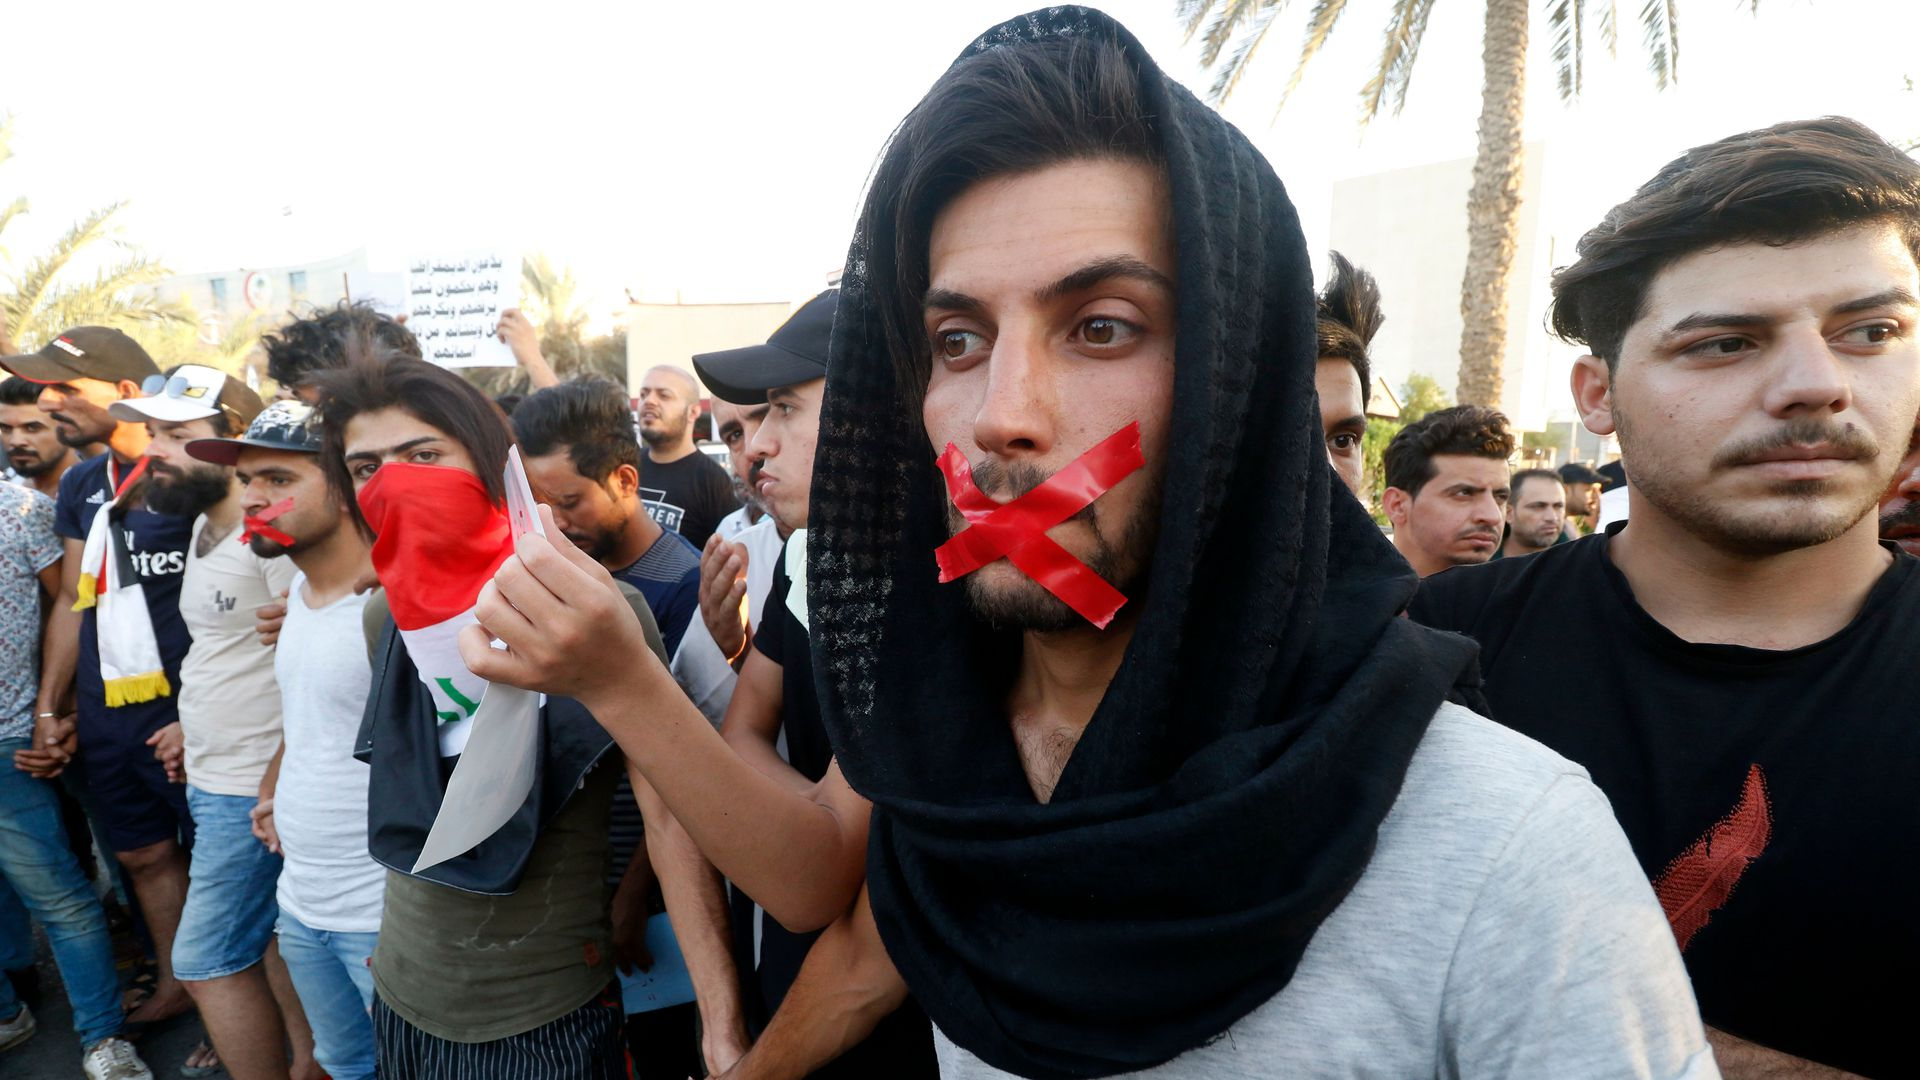 Iraqis with tape on their mouths attend a protest in the southern city of Basra on August 24, 2018.